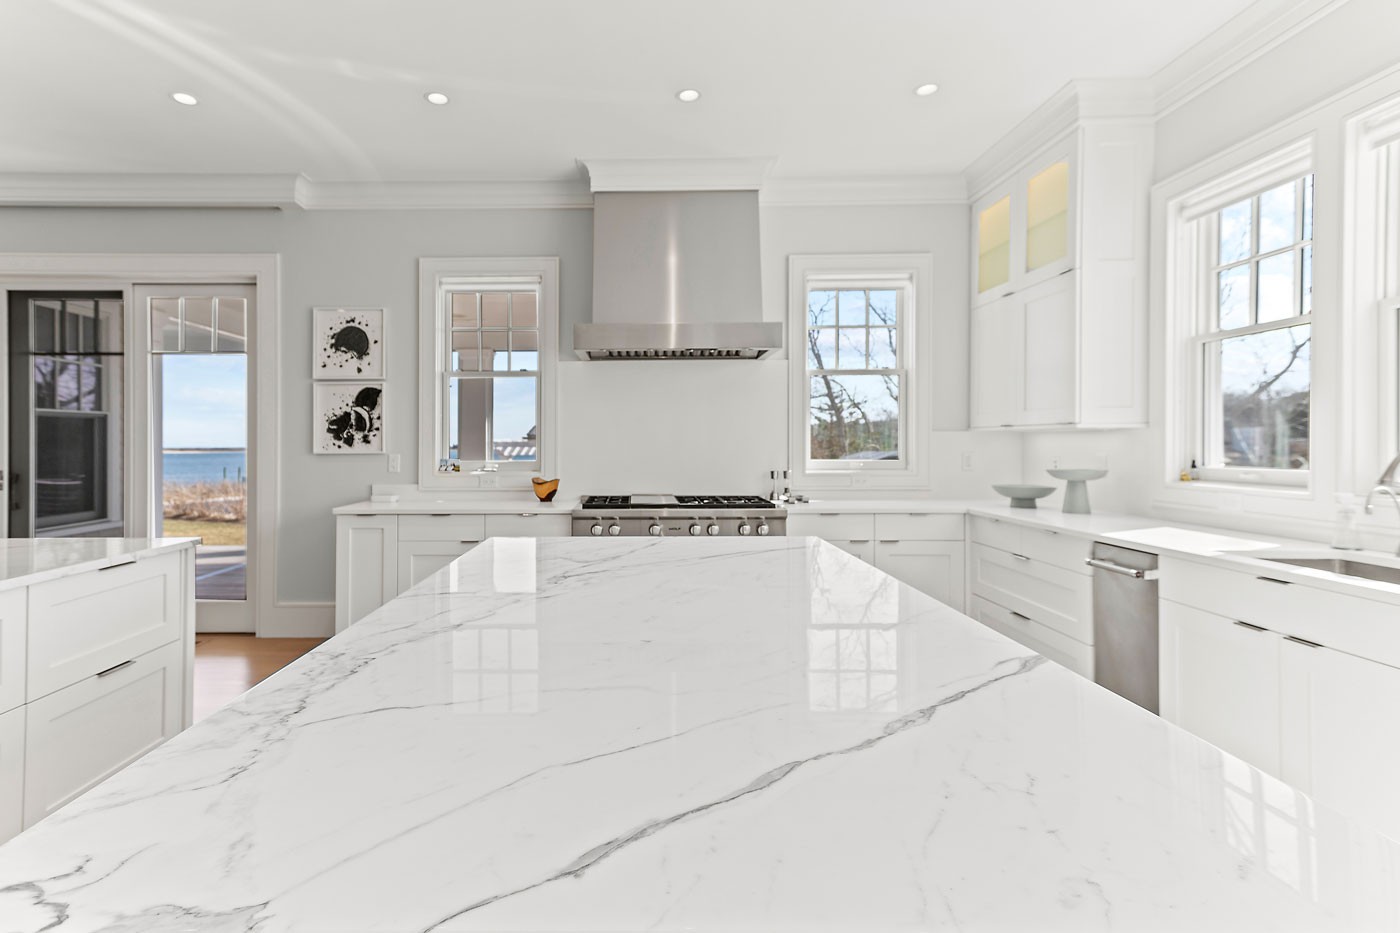 polished white island counter top